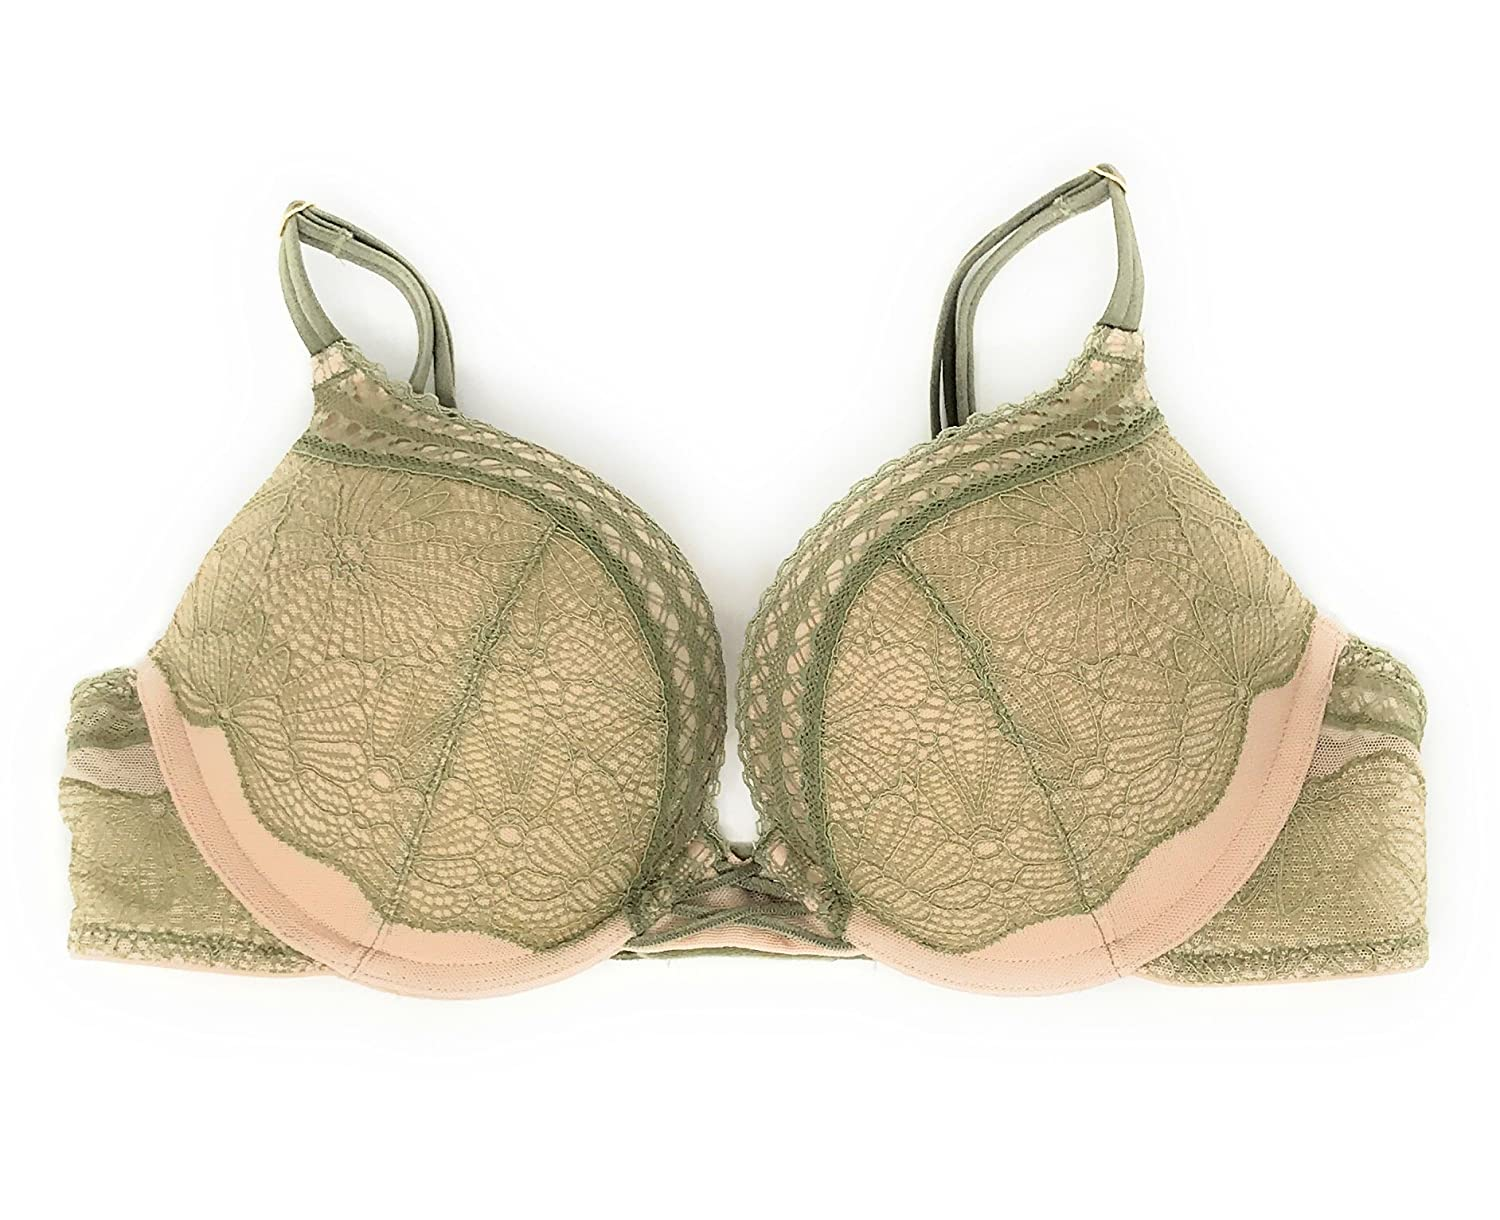 bcca4fef3d Victoria s Secret Bombshell Add 2 Cup Push-Up Bra at Amazon Women s  Clothing store